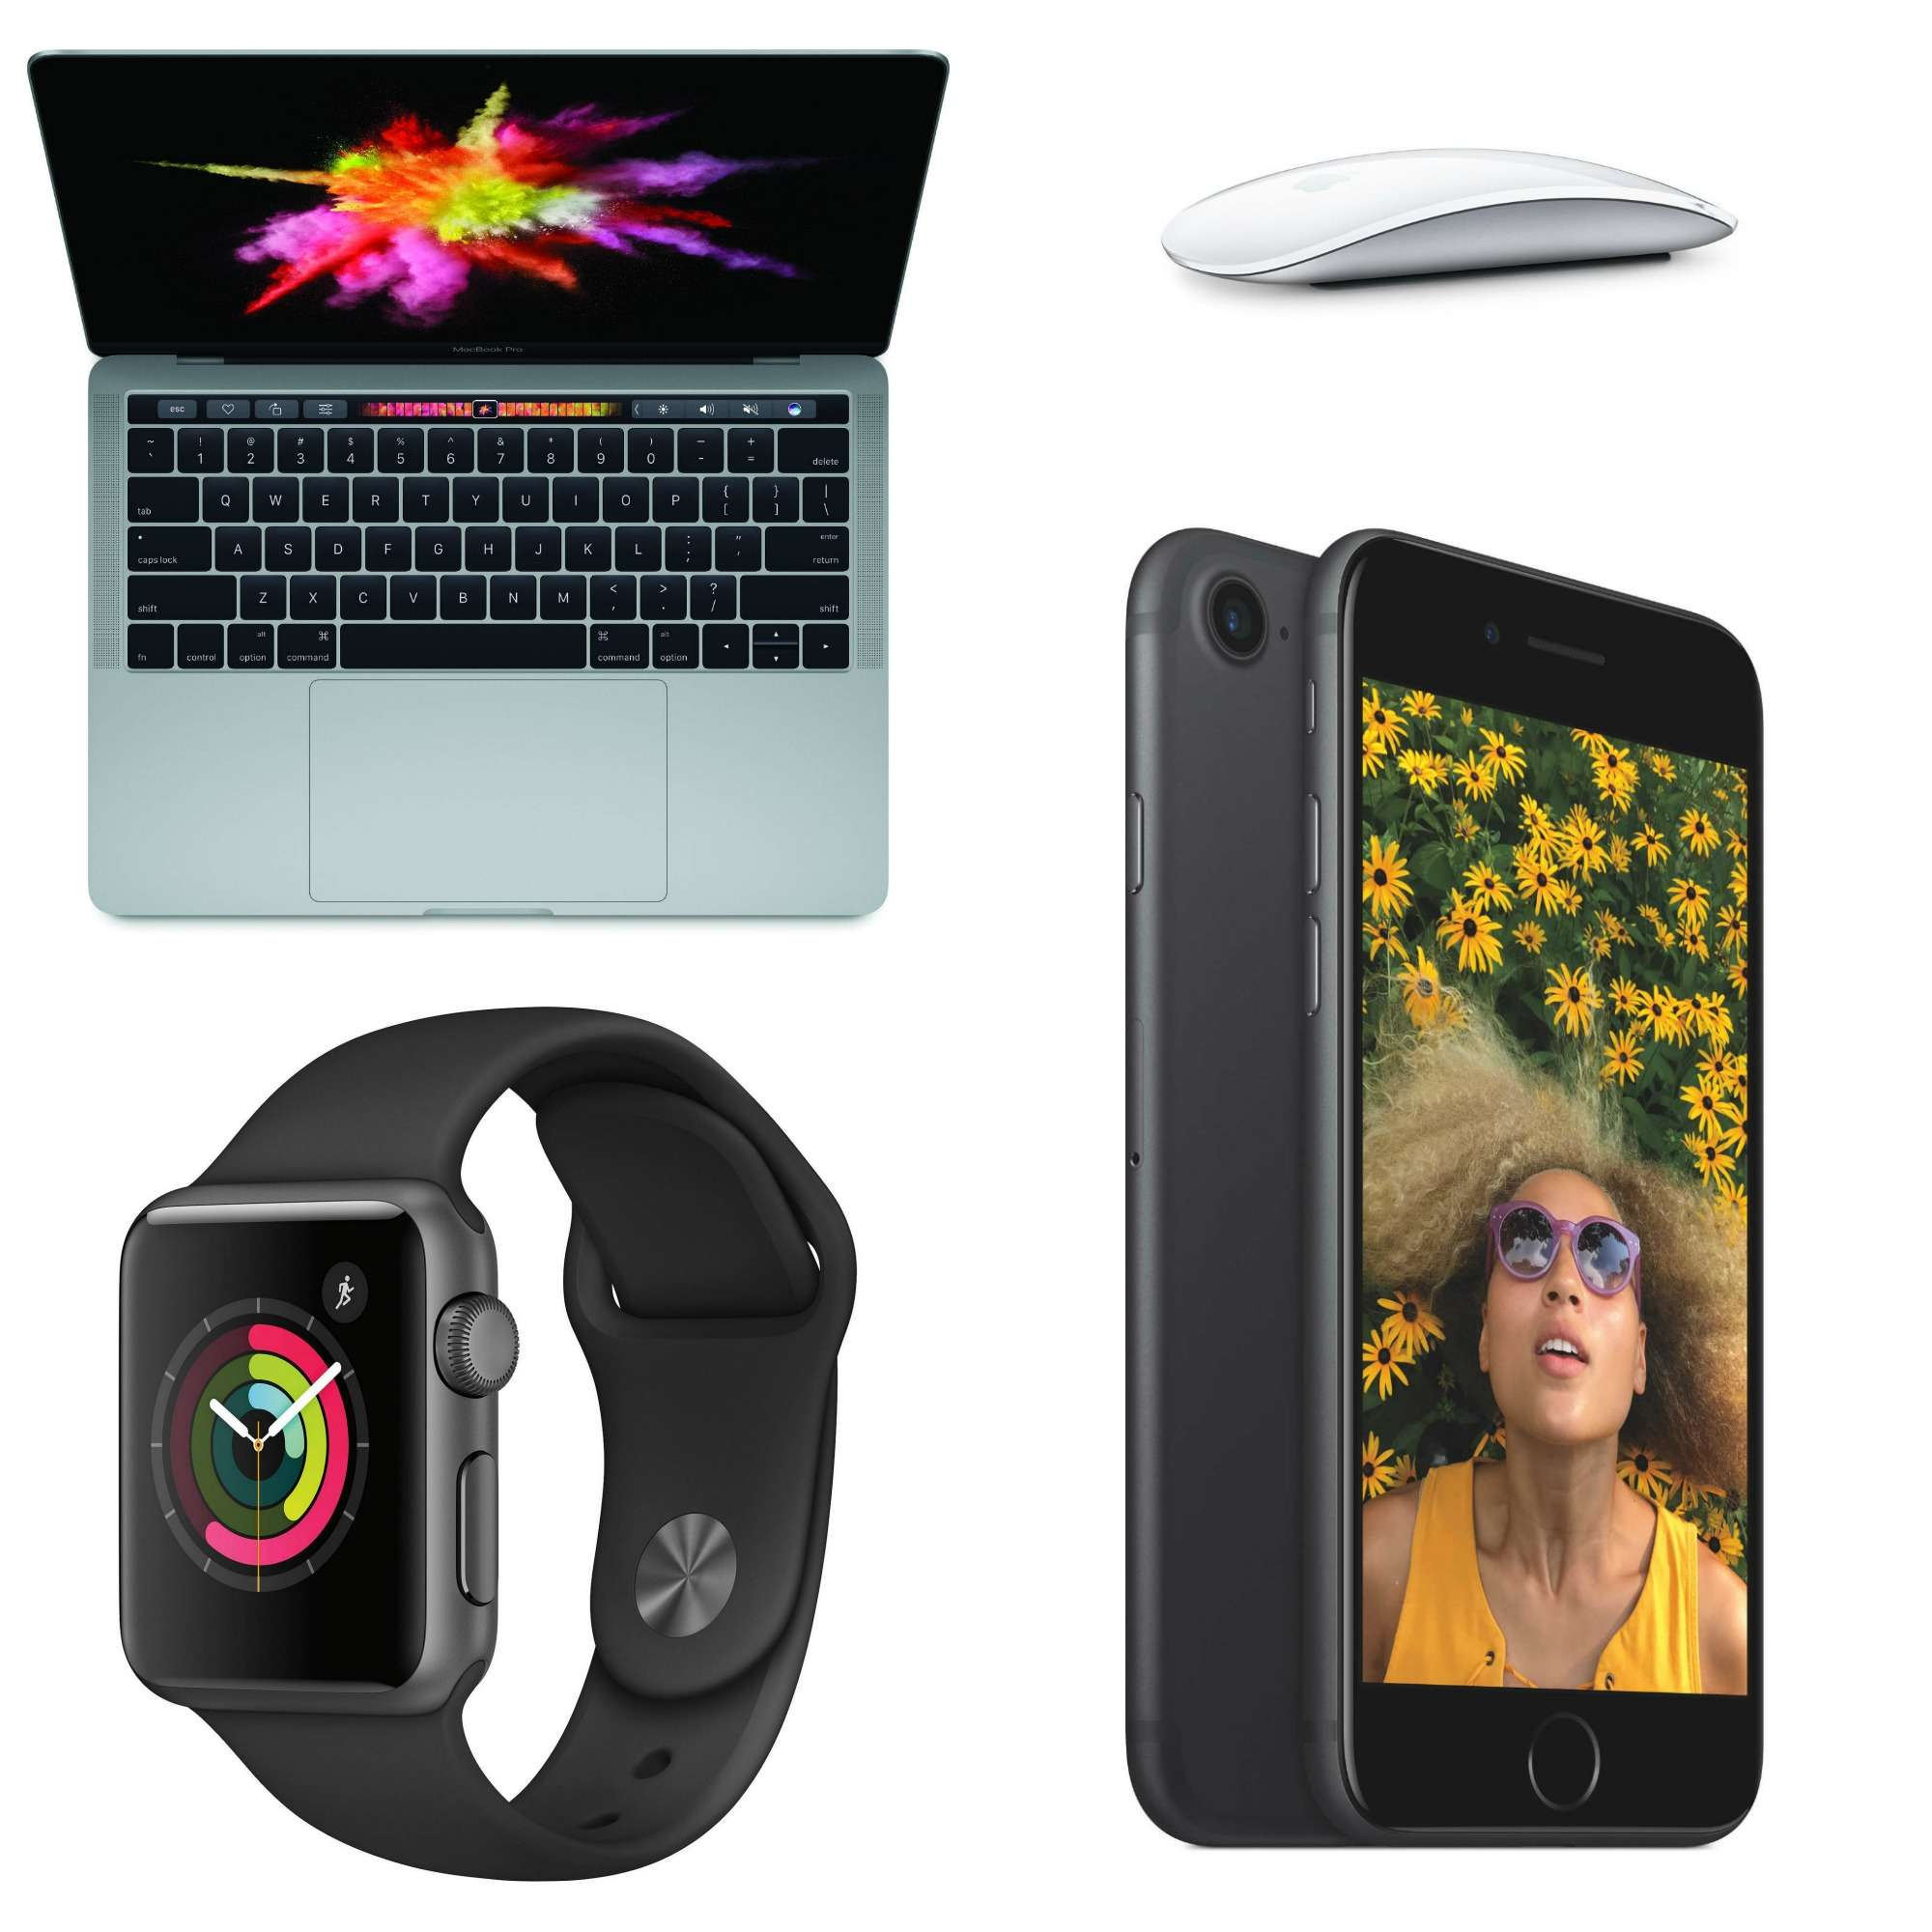 Apple Christmas deals